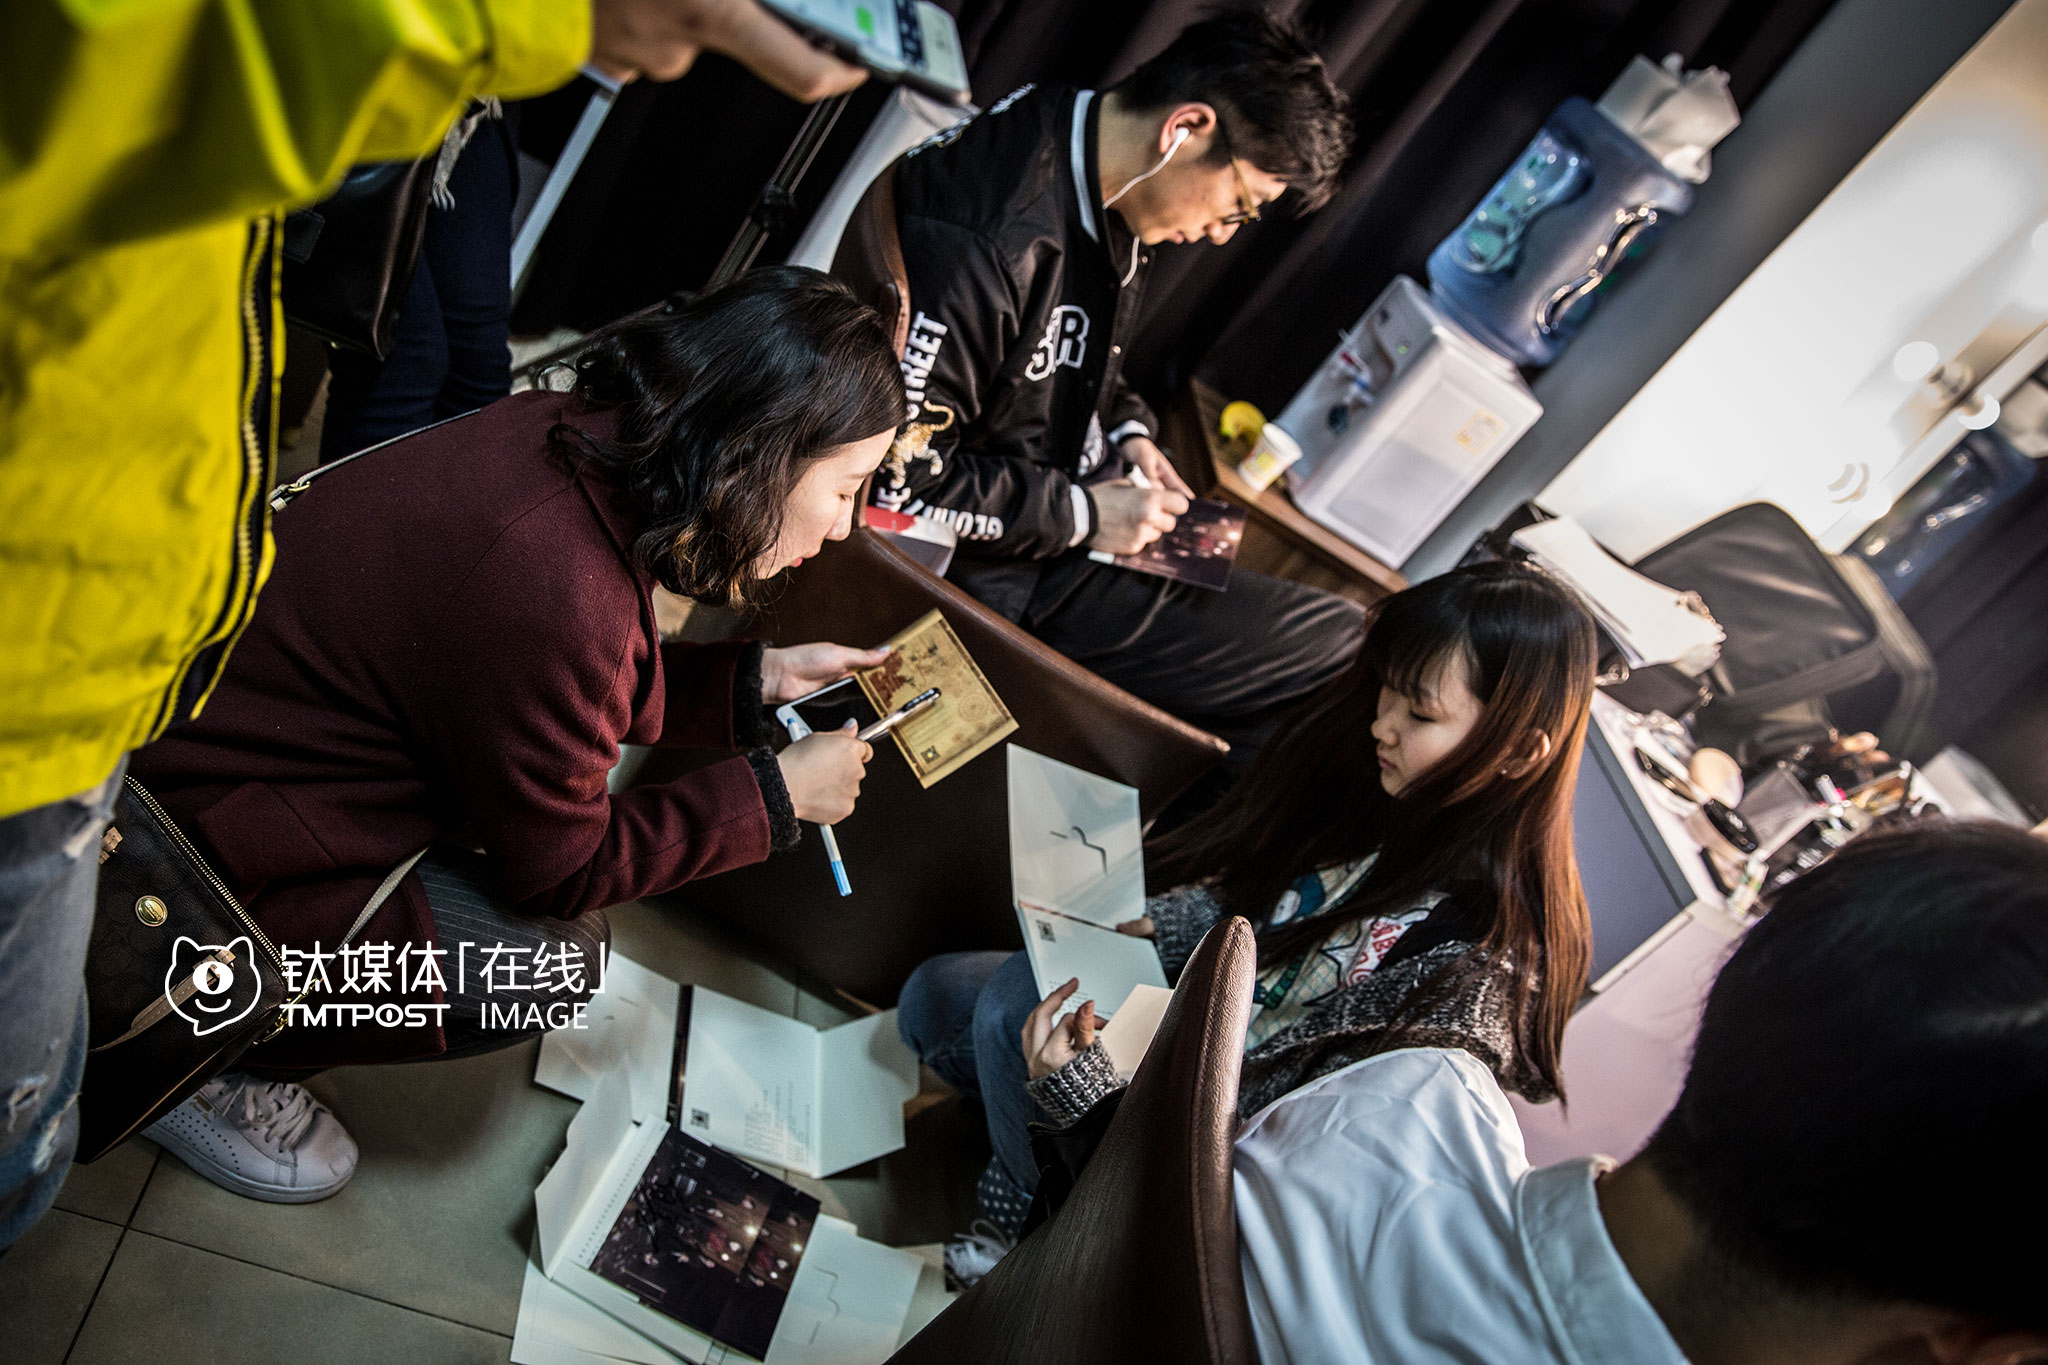 During the makeup session, Bai Ke, one of Boss's leads, was signing on UniMedia's cards, which would be sent to some lucky fans.